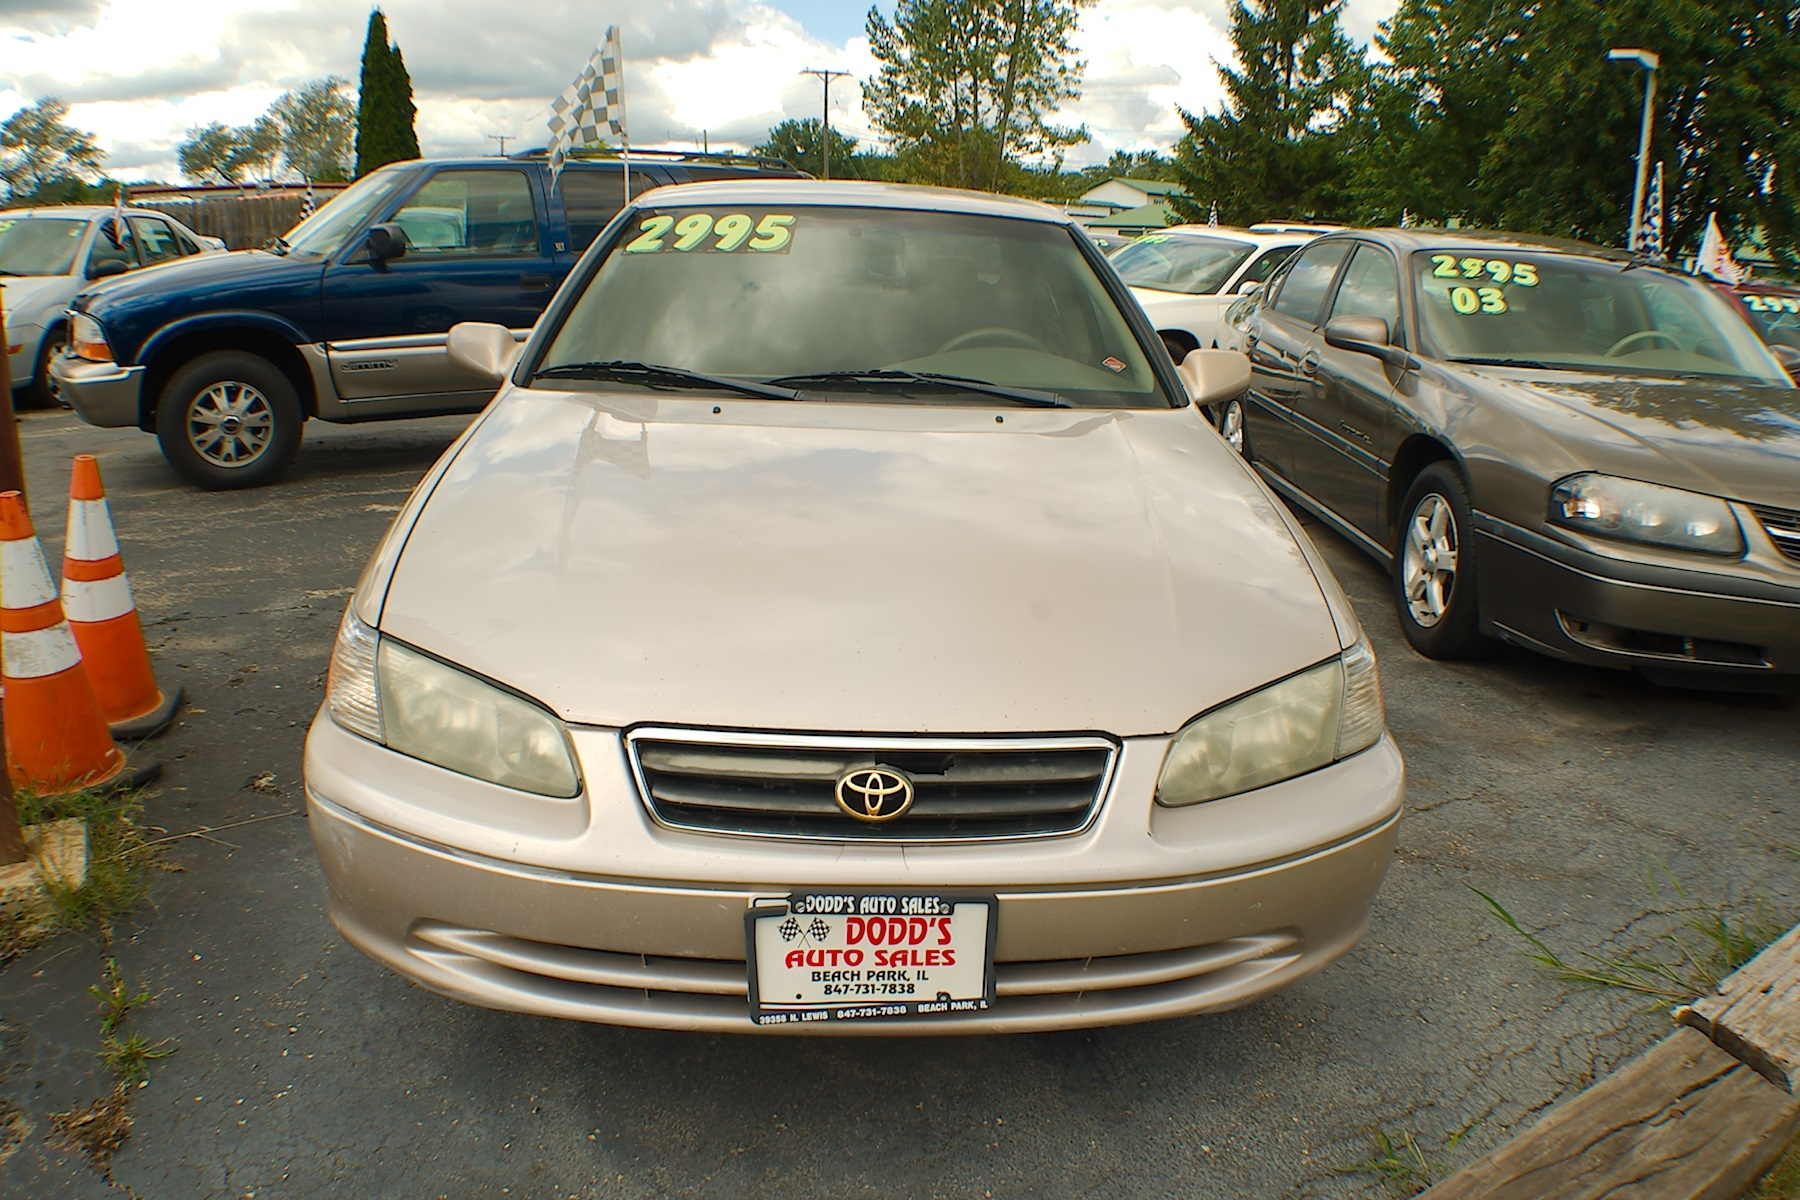 2001 Toyota Camry LE Sand Sedan Used Car Sale Gurnee Kenosha Mchenry Chicago Illinois